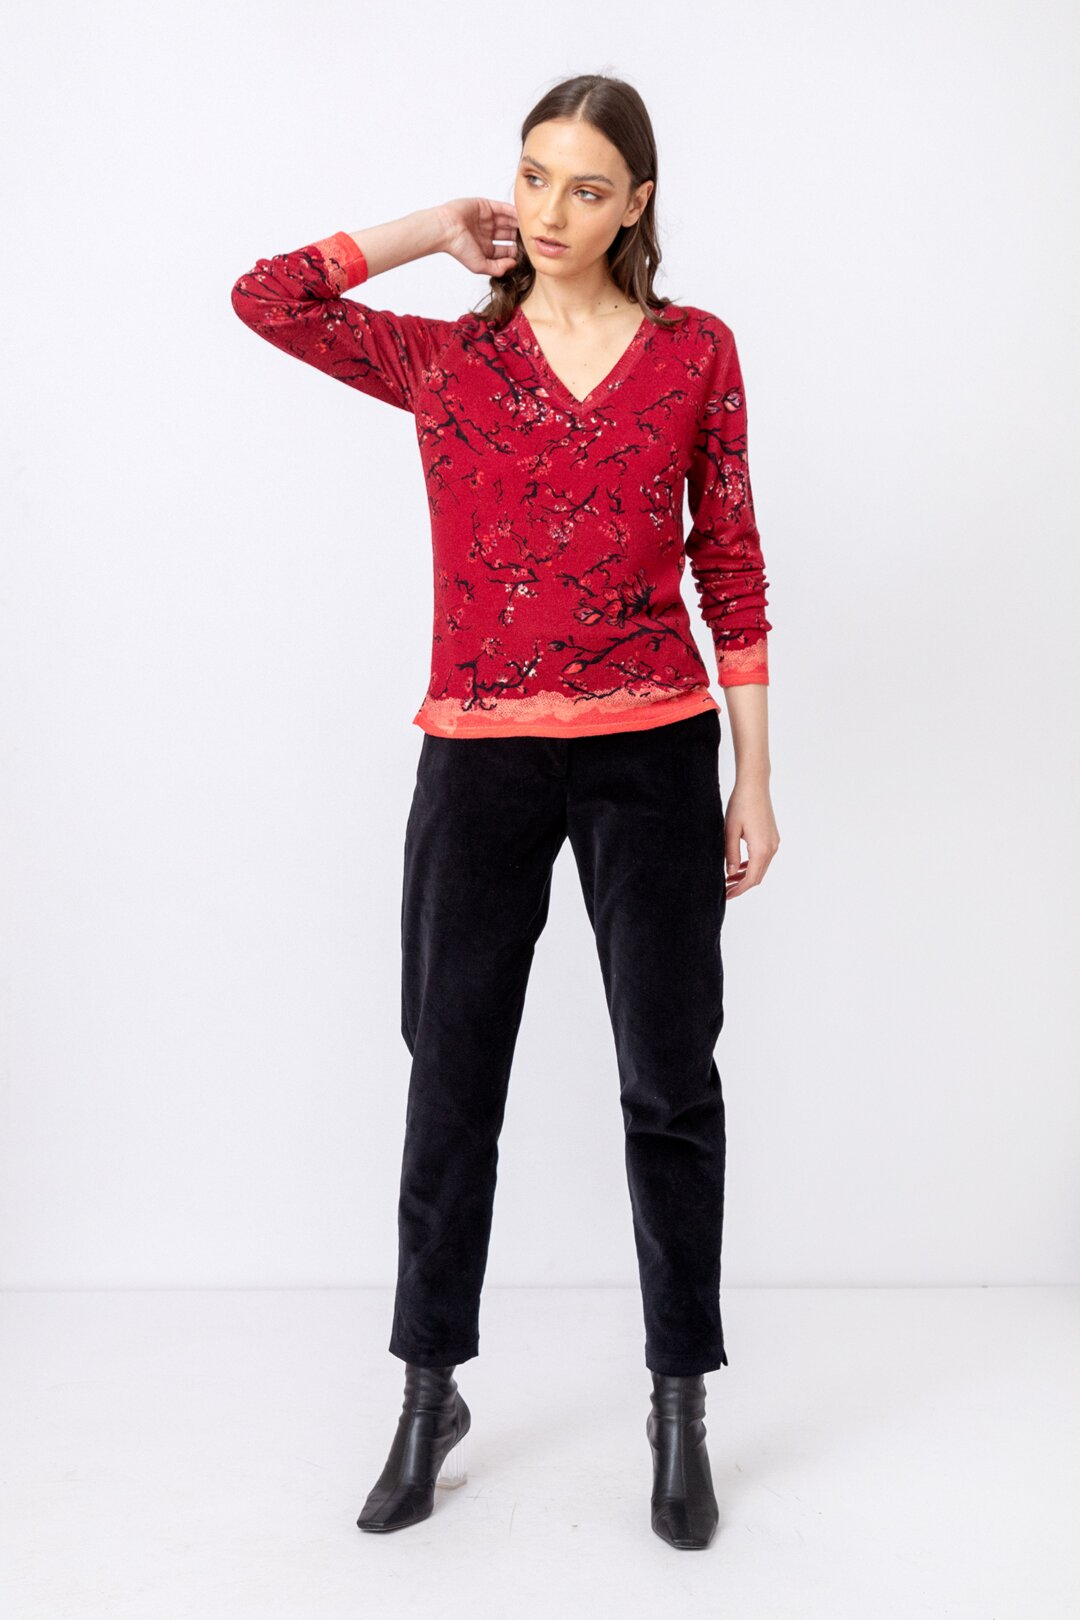 outfit-7c8a1846